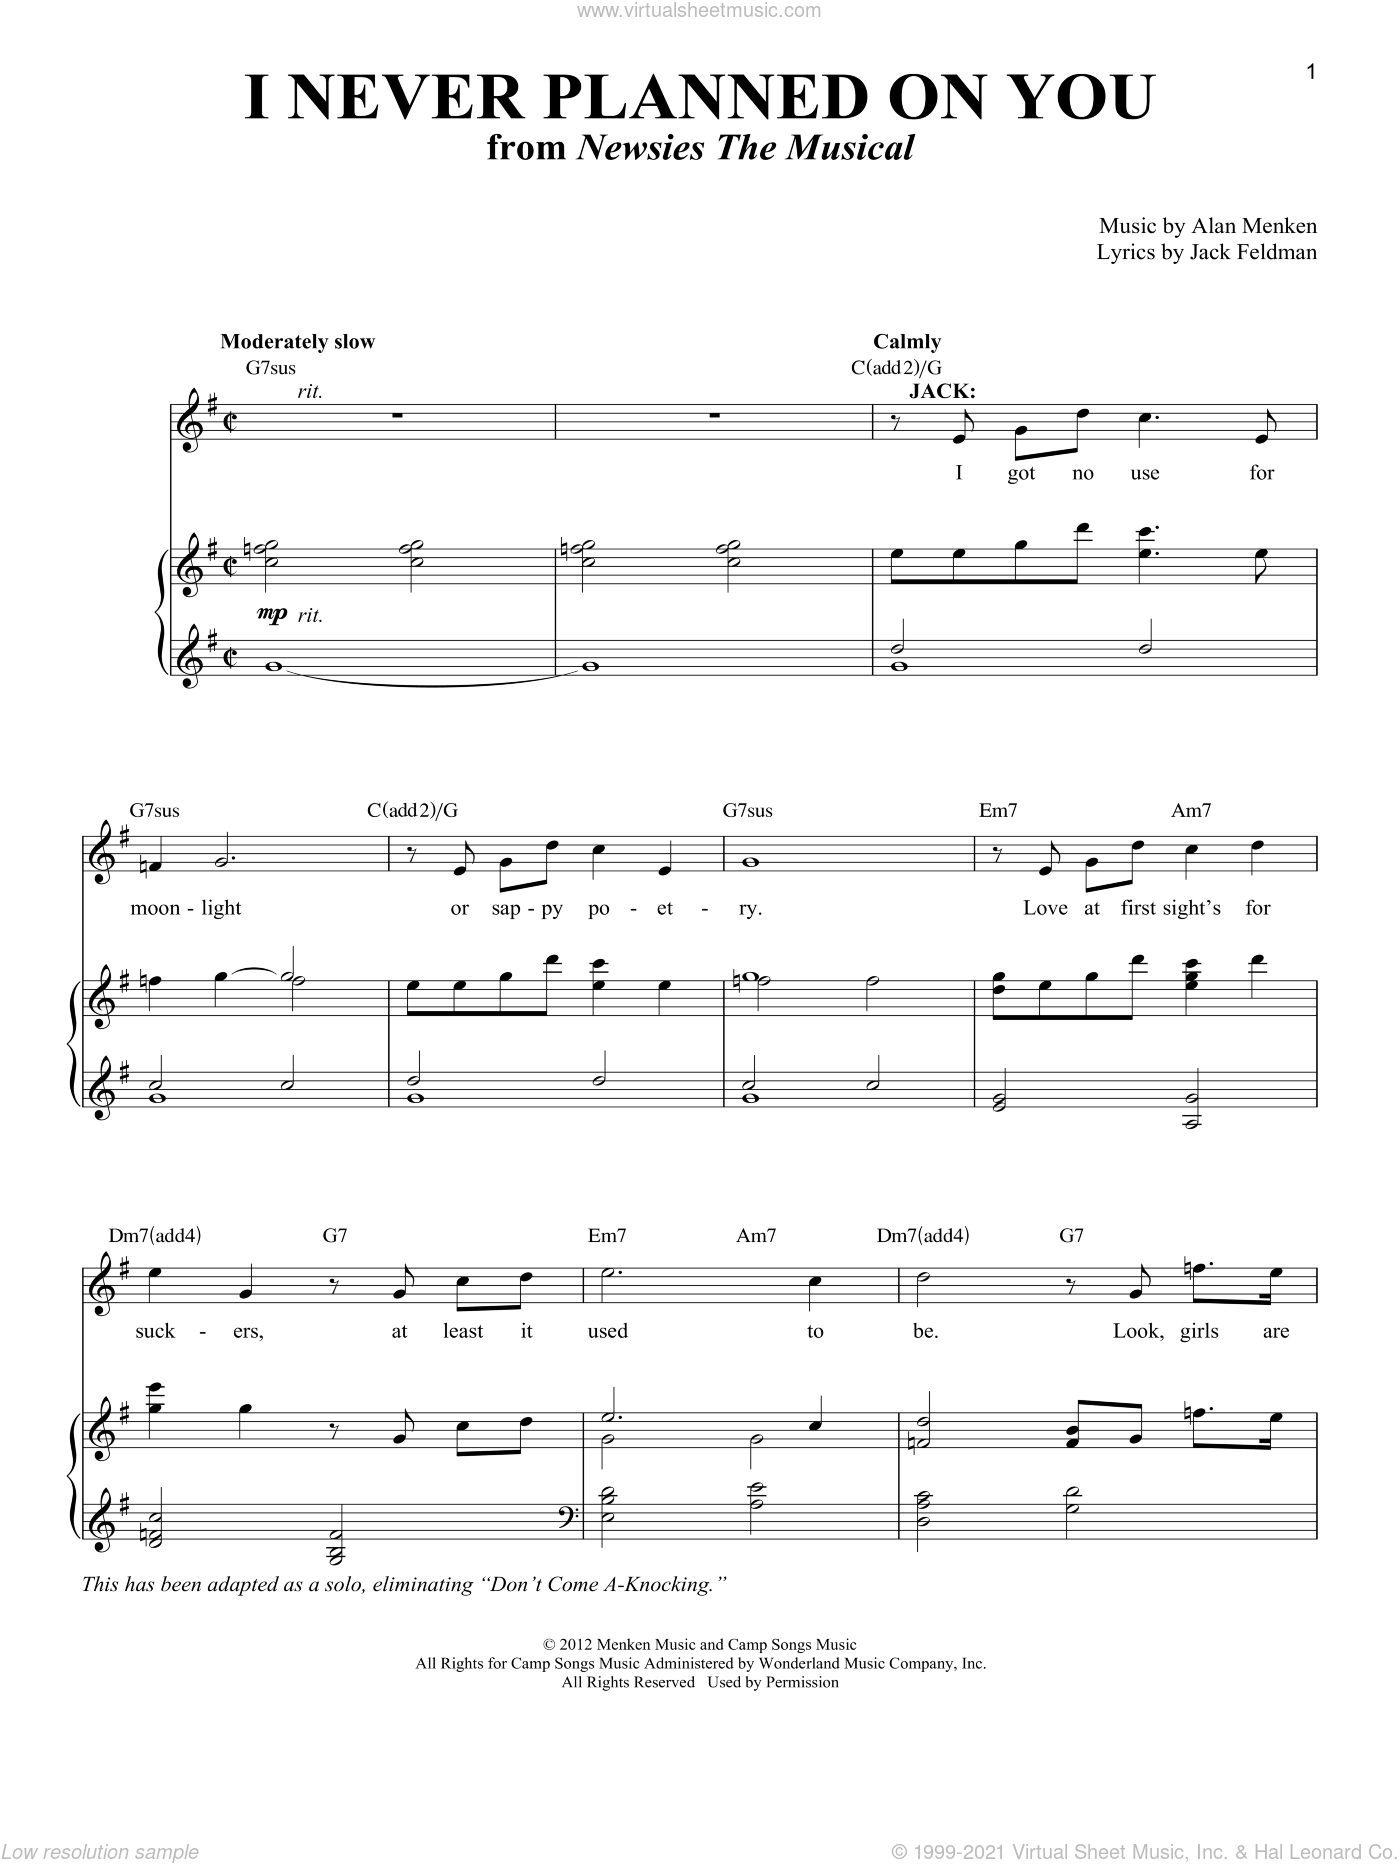 I Never Planned On You/Don't Come A-Knocking sheet music for voice and piano by Jack Feldman and Alan Menken. Score Image Preview.